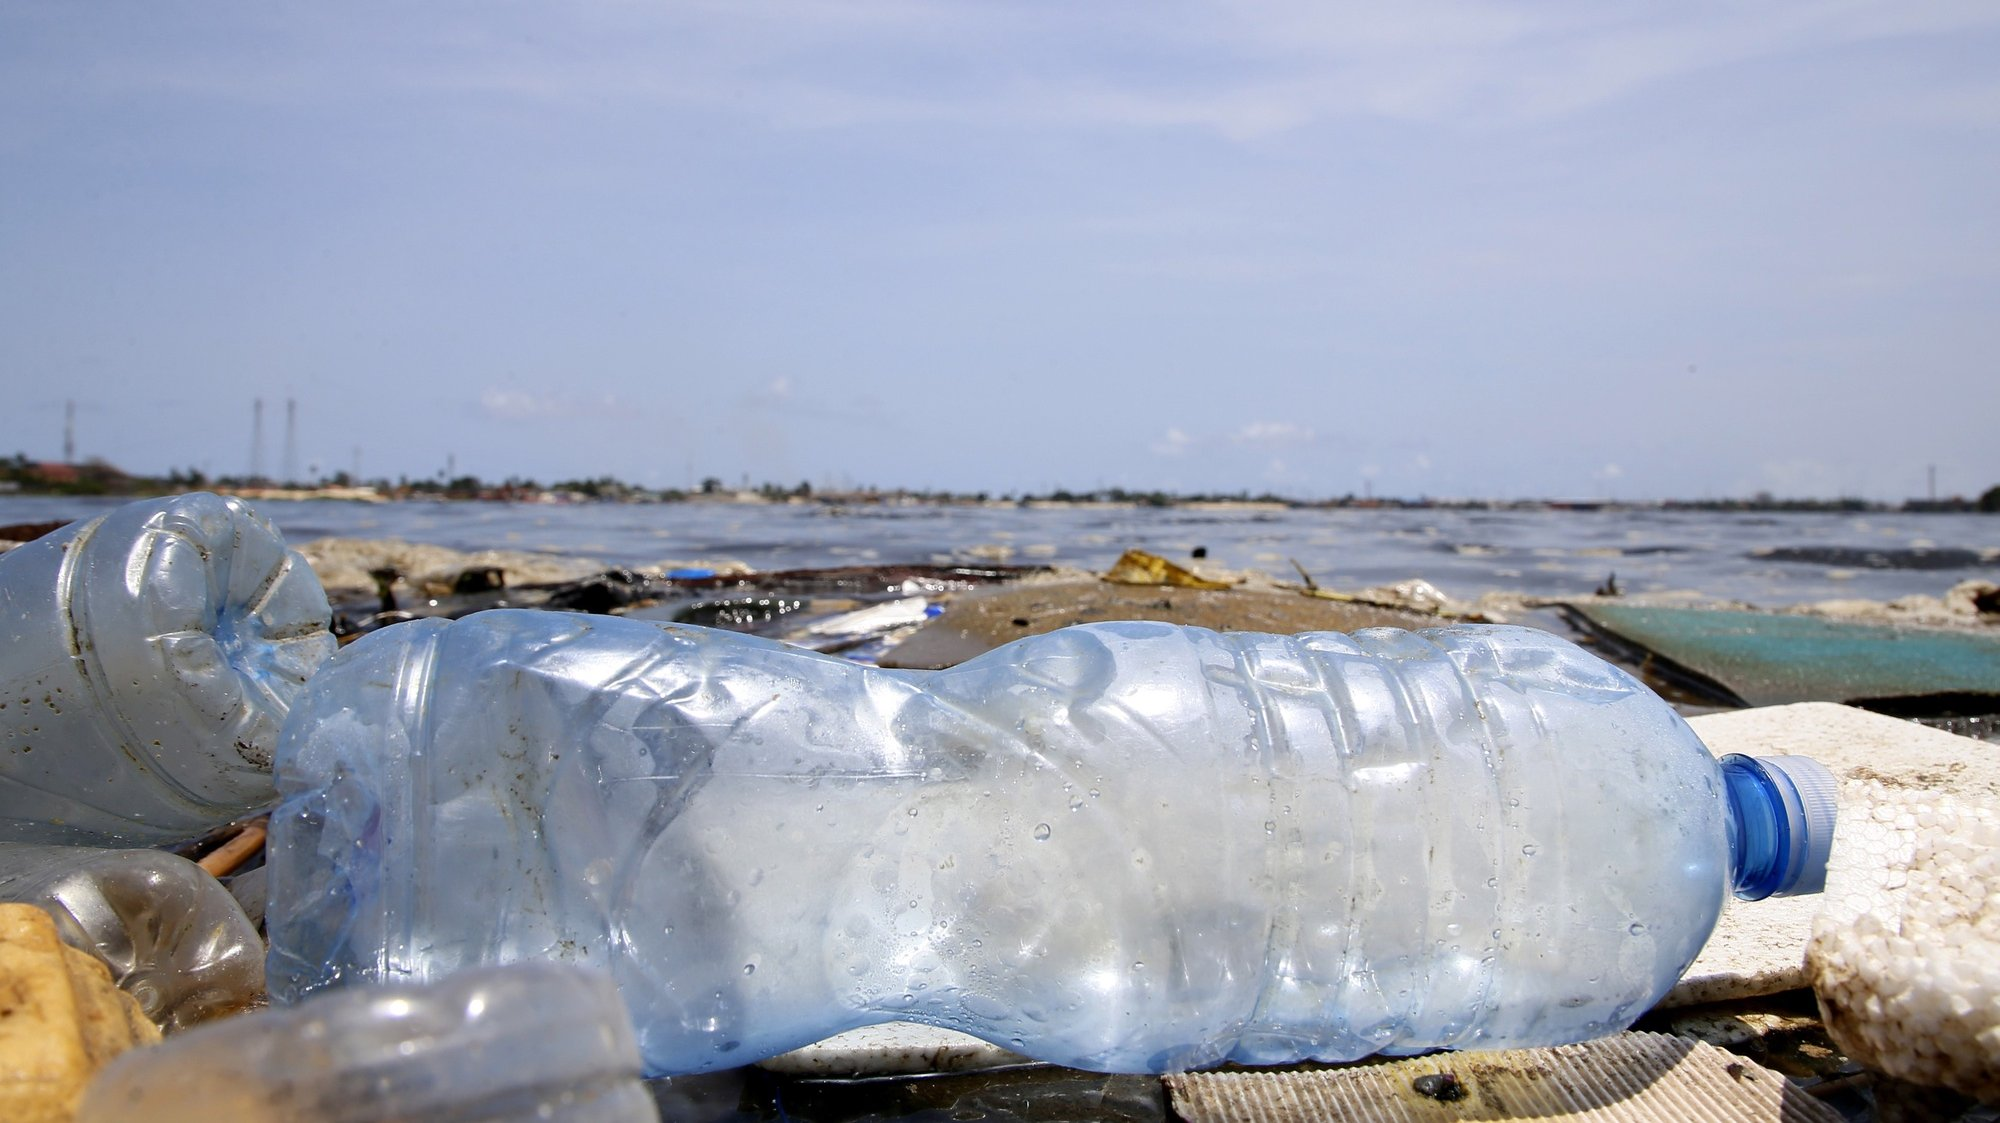 epa09150033 Plastic bottles float on the Ebrie lagoon in the city of Abidjan, Ivory Coast, 21 April 2021. According to the Ivorian Anti Pollution Center (CIAPOL), every day 200 tonnes of solid waste is poured into all of the 8 lagoon bays of Abidjan. This waste is mainly composed of plastics, which have affected the Ebrie lagoon for several decades. This pollution is widespread and will affect environments for hundreds of years. A project has therefore been set up by the Ivorian Antipollution Center (Ciapol) to recover its plastic waste from the water bodies and bring it back to land in order to send it to a treatment or recycling circuit.  EPA/LEGNAN KOULA